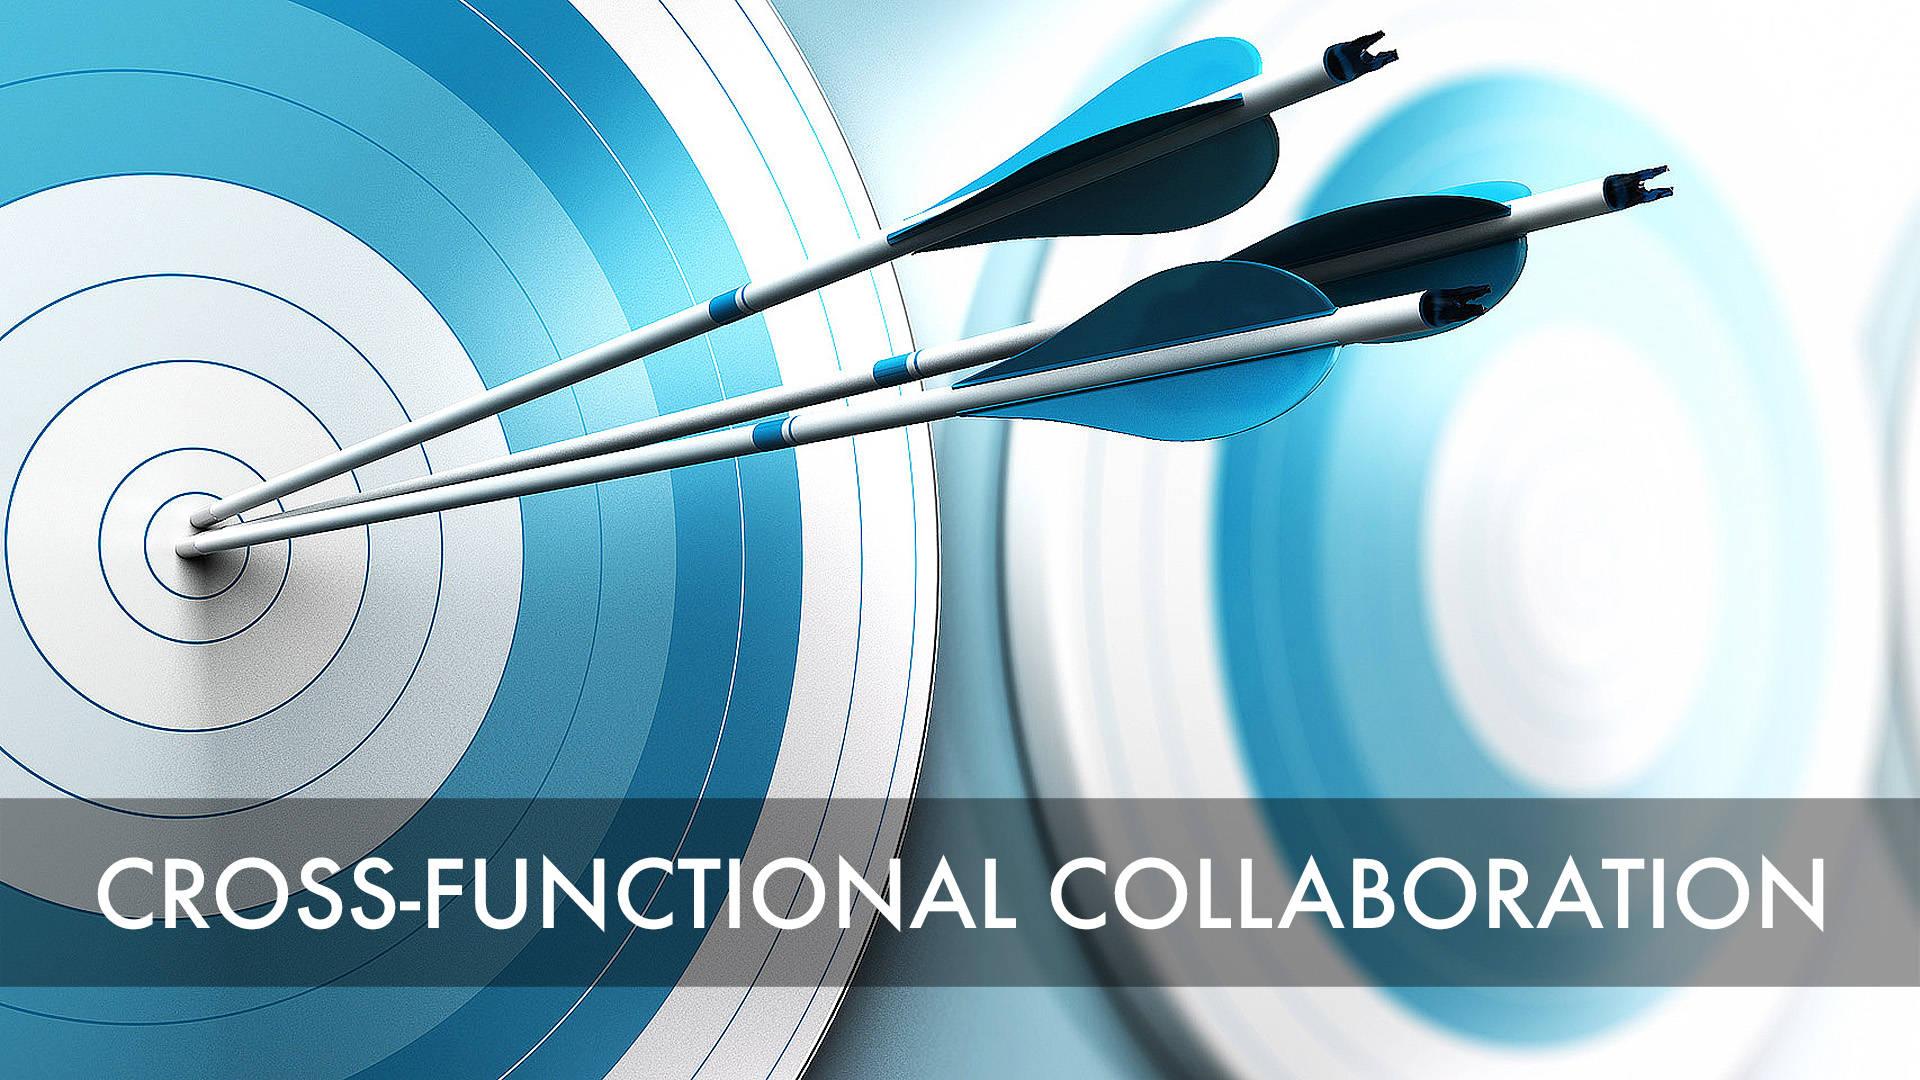 Cross-Functional Collaboration Thumbnail.jpg